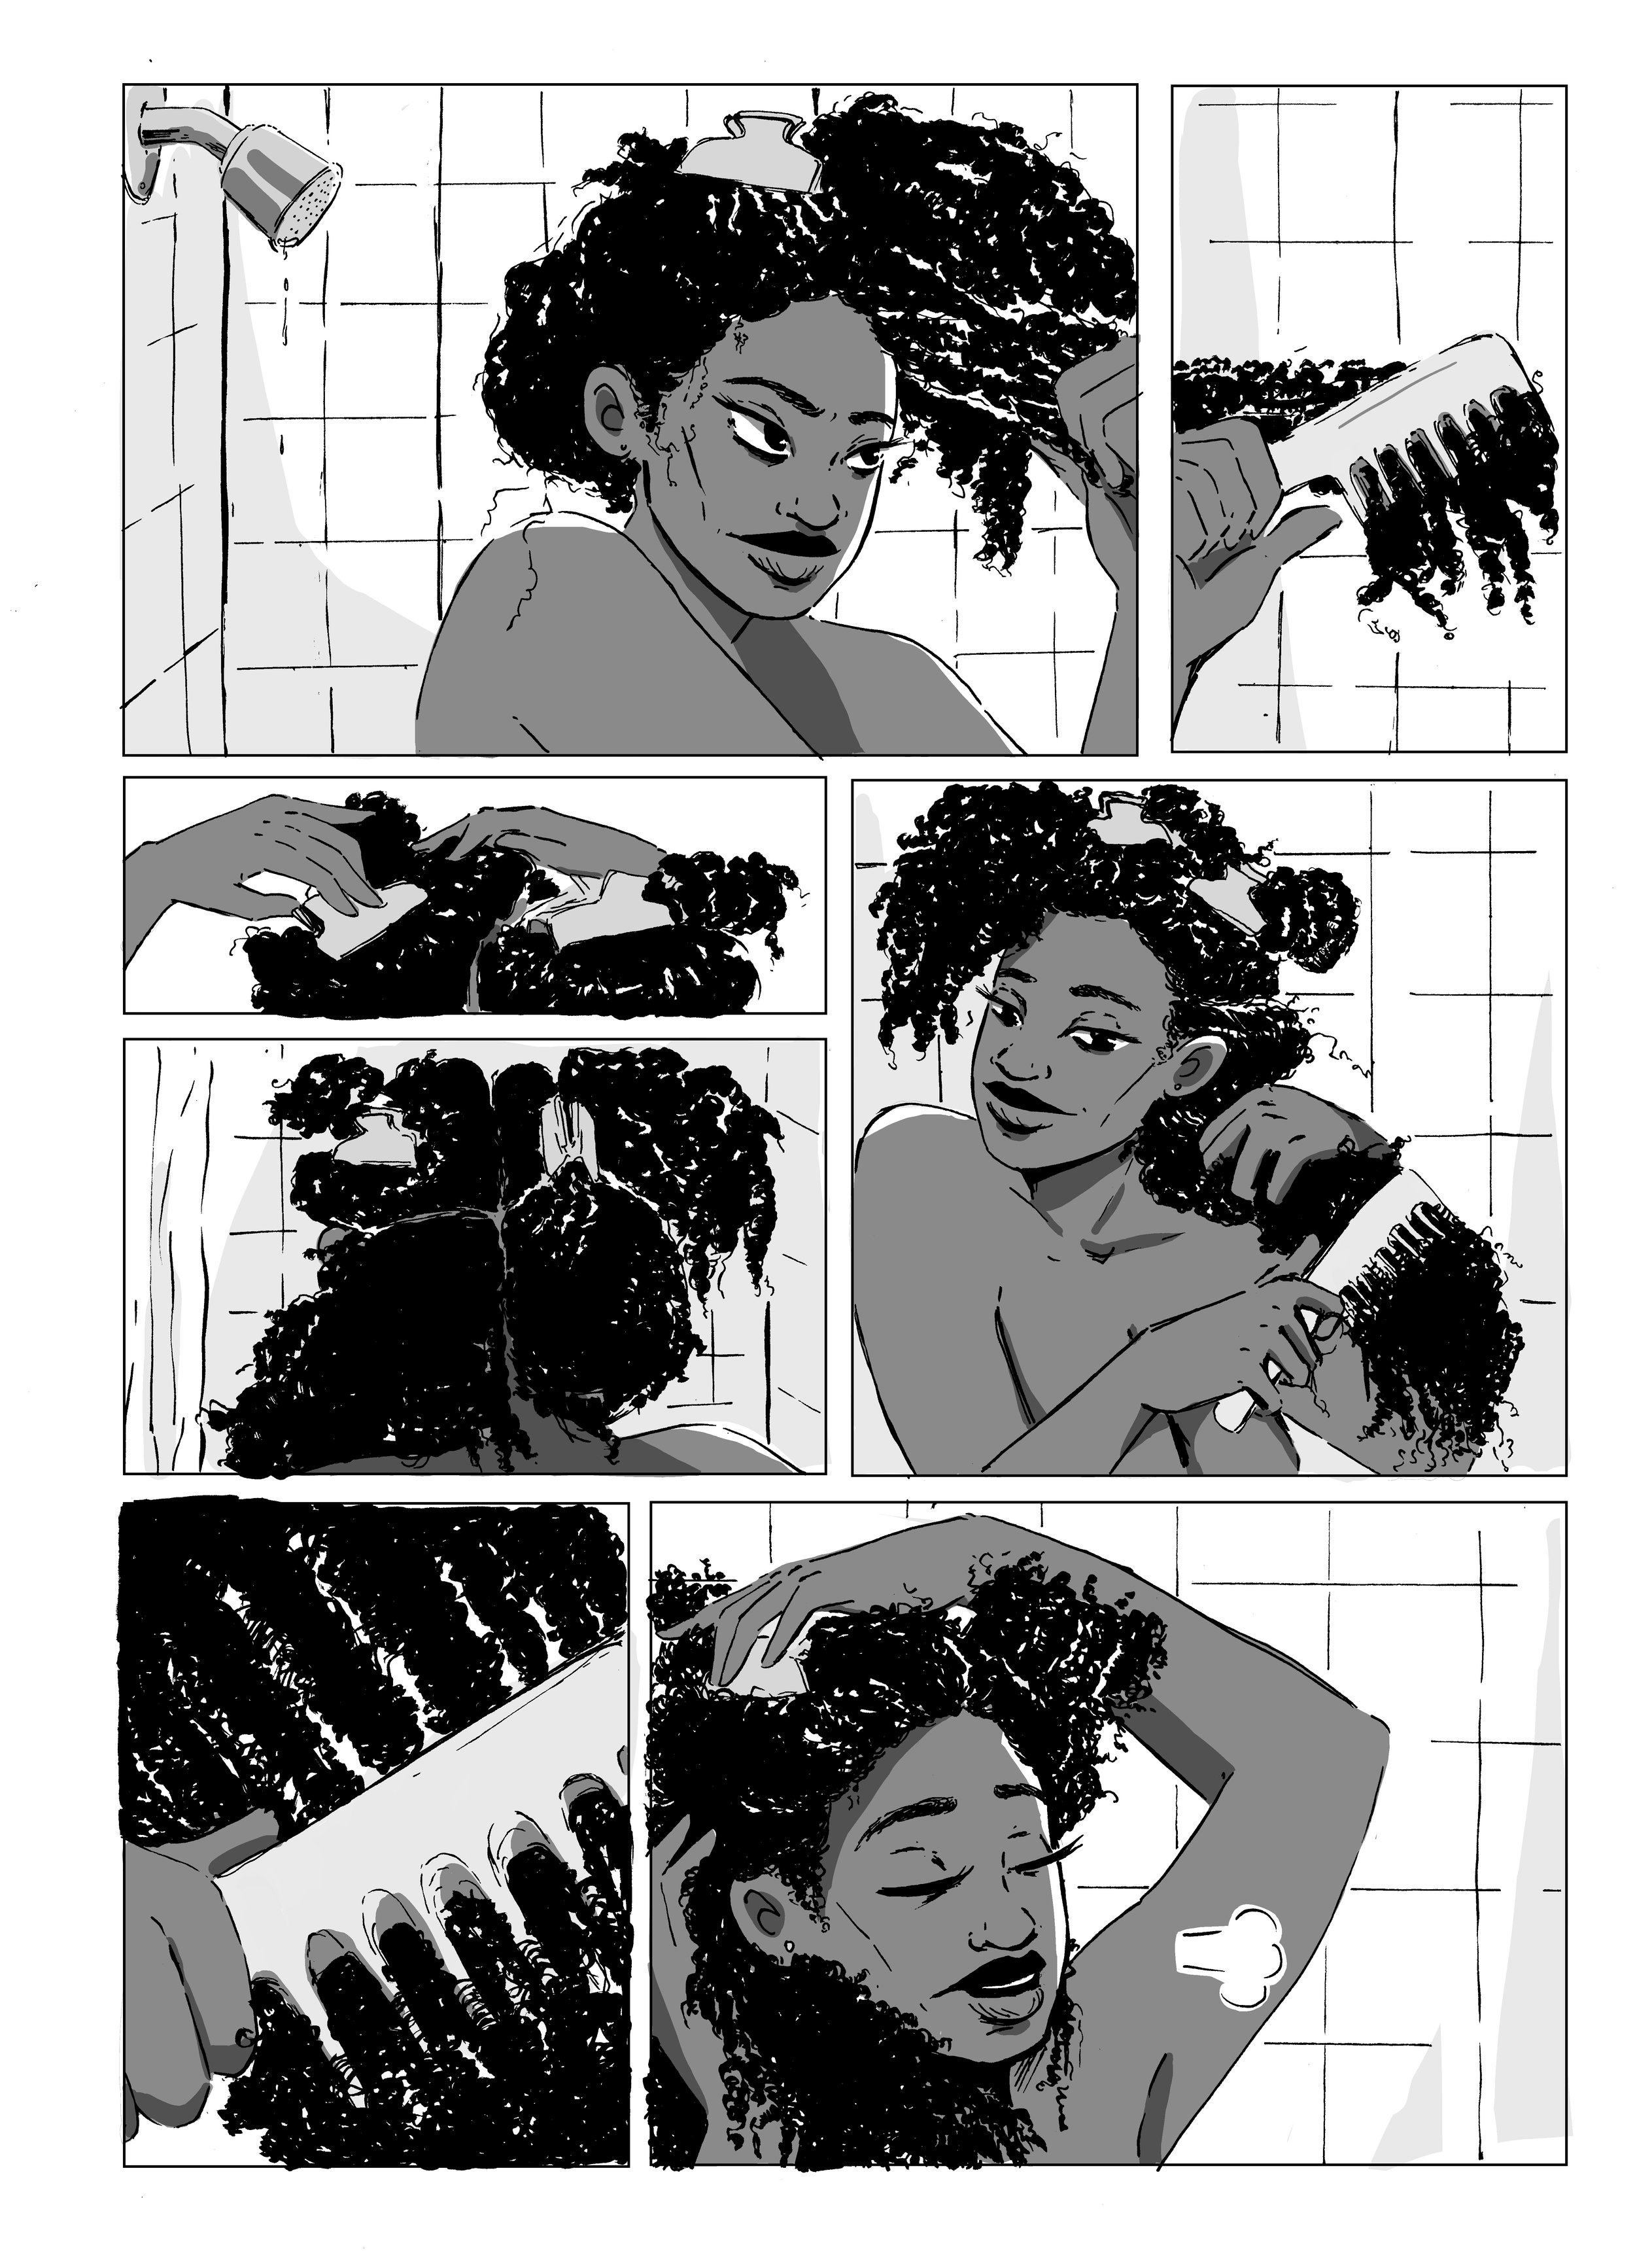 Wash Day Page.jpg